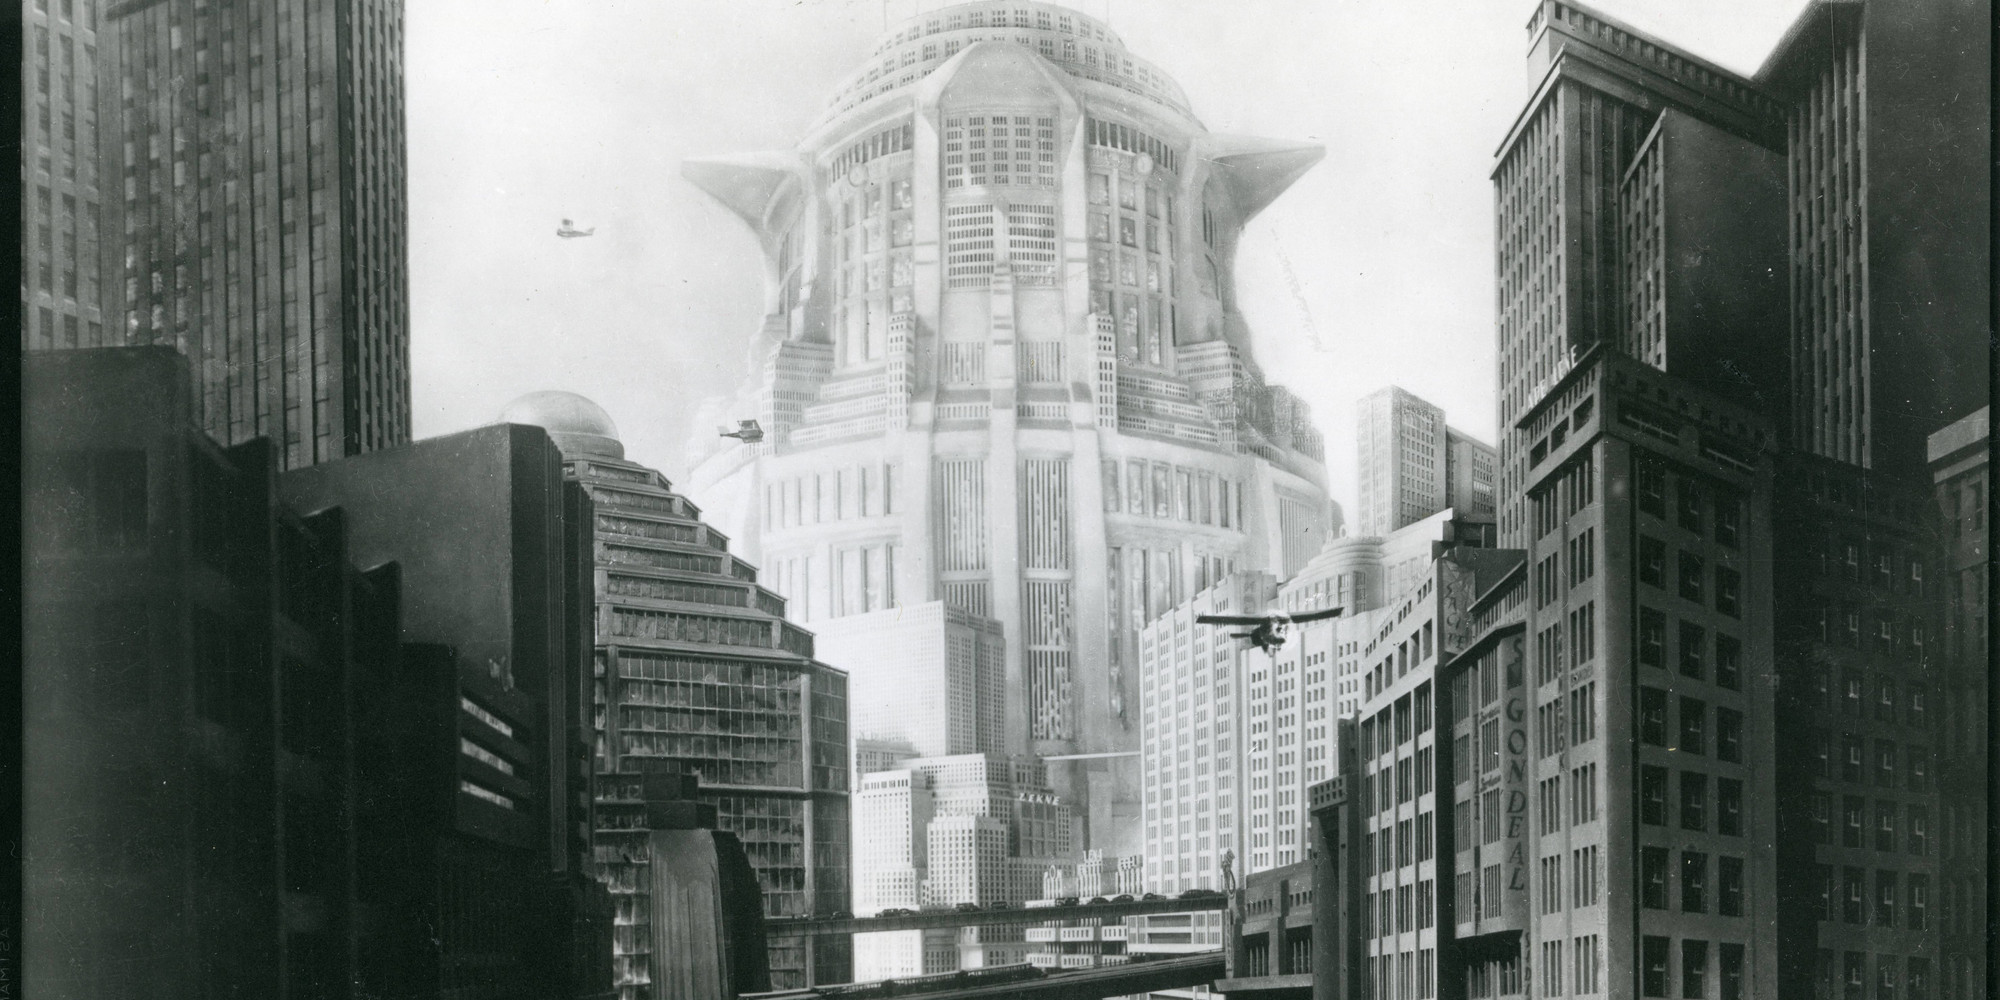 Film still from Metropolis. 1927. Germany. Directed by Fritz Lang. Gelatin silver print. Film Study Center Special Collections